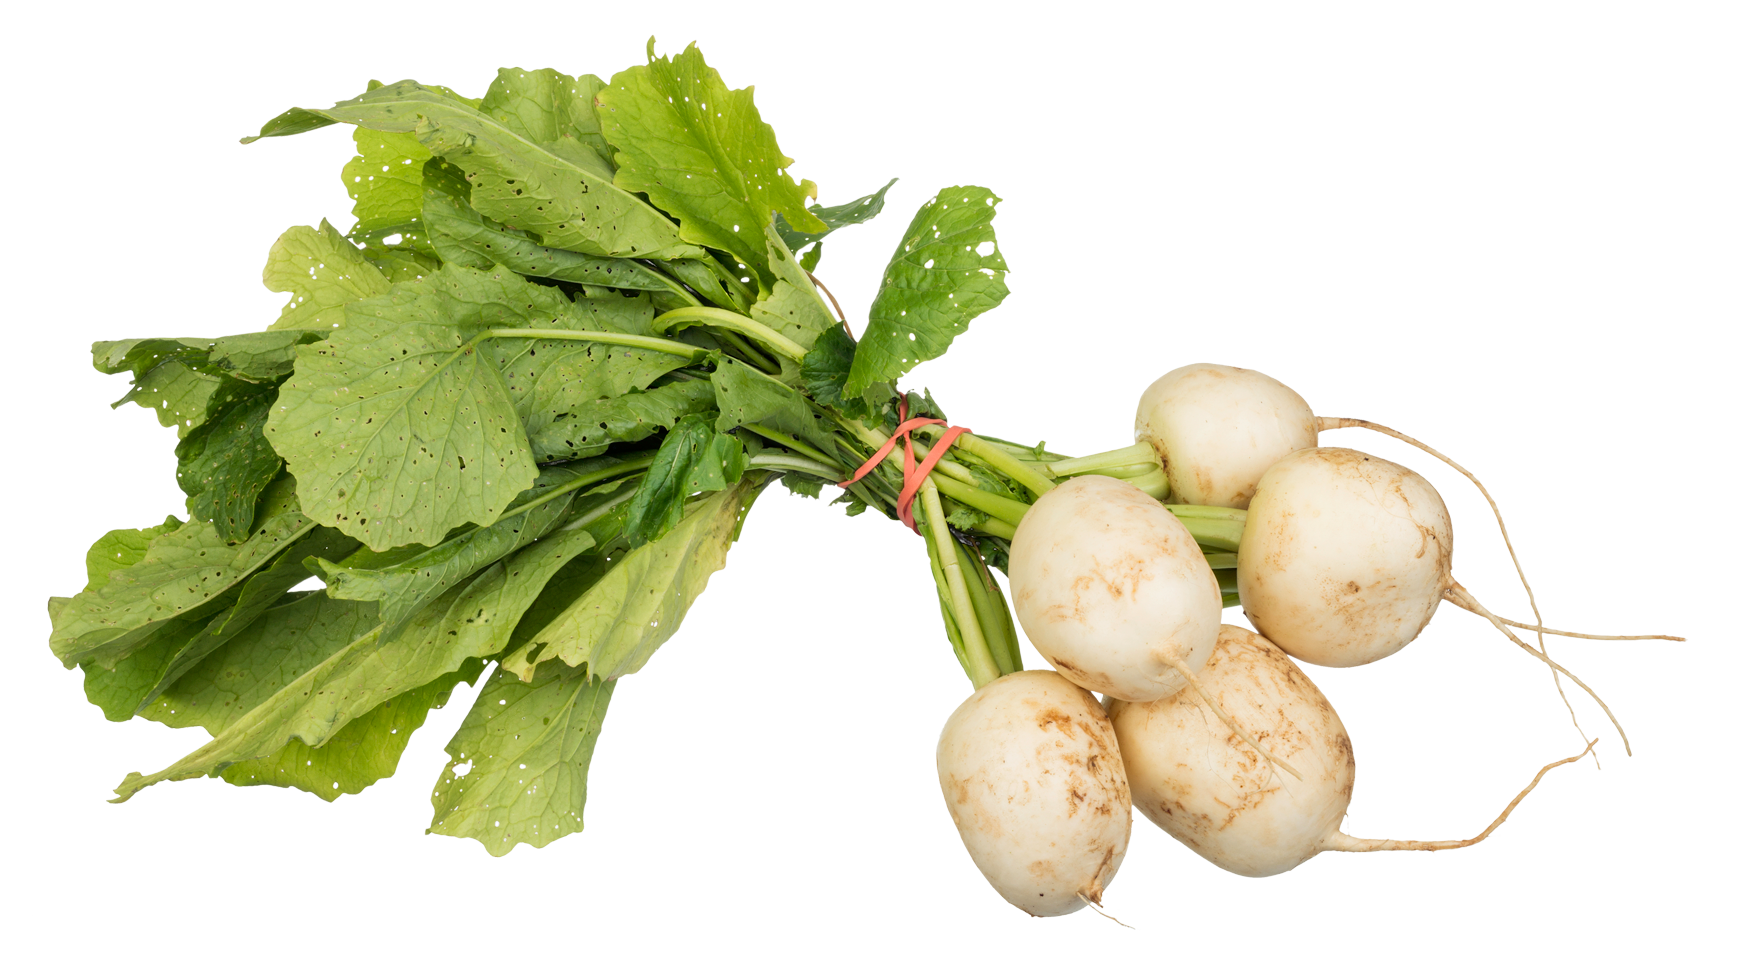 Turnips png image purepng. Vegetables clipart turnip